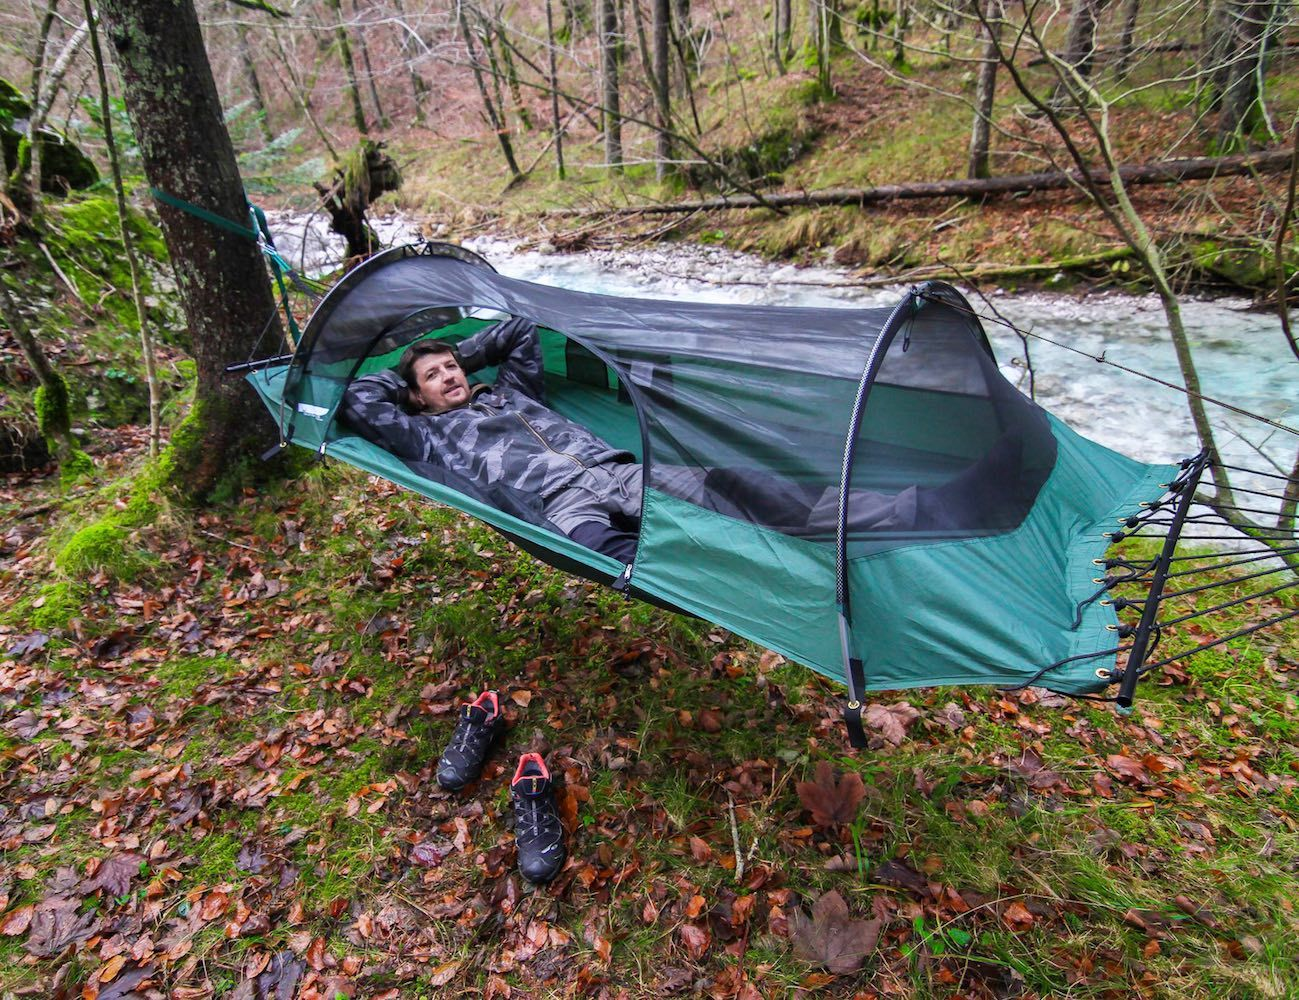 The Blue Ridge #Camping #Hammock by Lawson Hammock is a unique, hybrid tent-hammock that has been rated #1 on the market by leading publications like Backpacker and Outside.